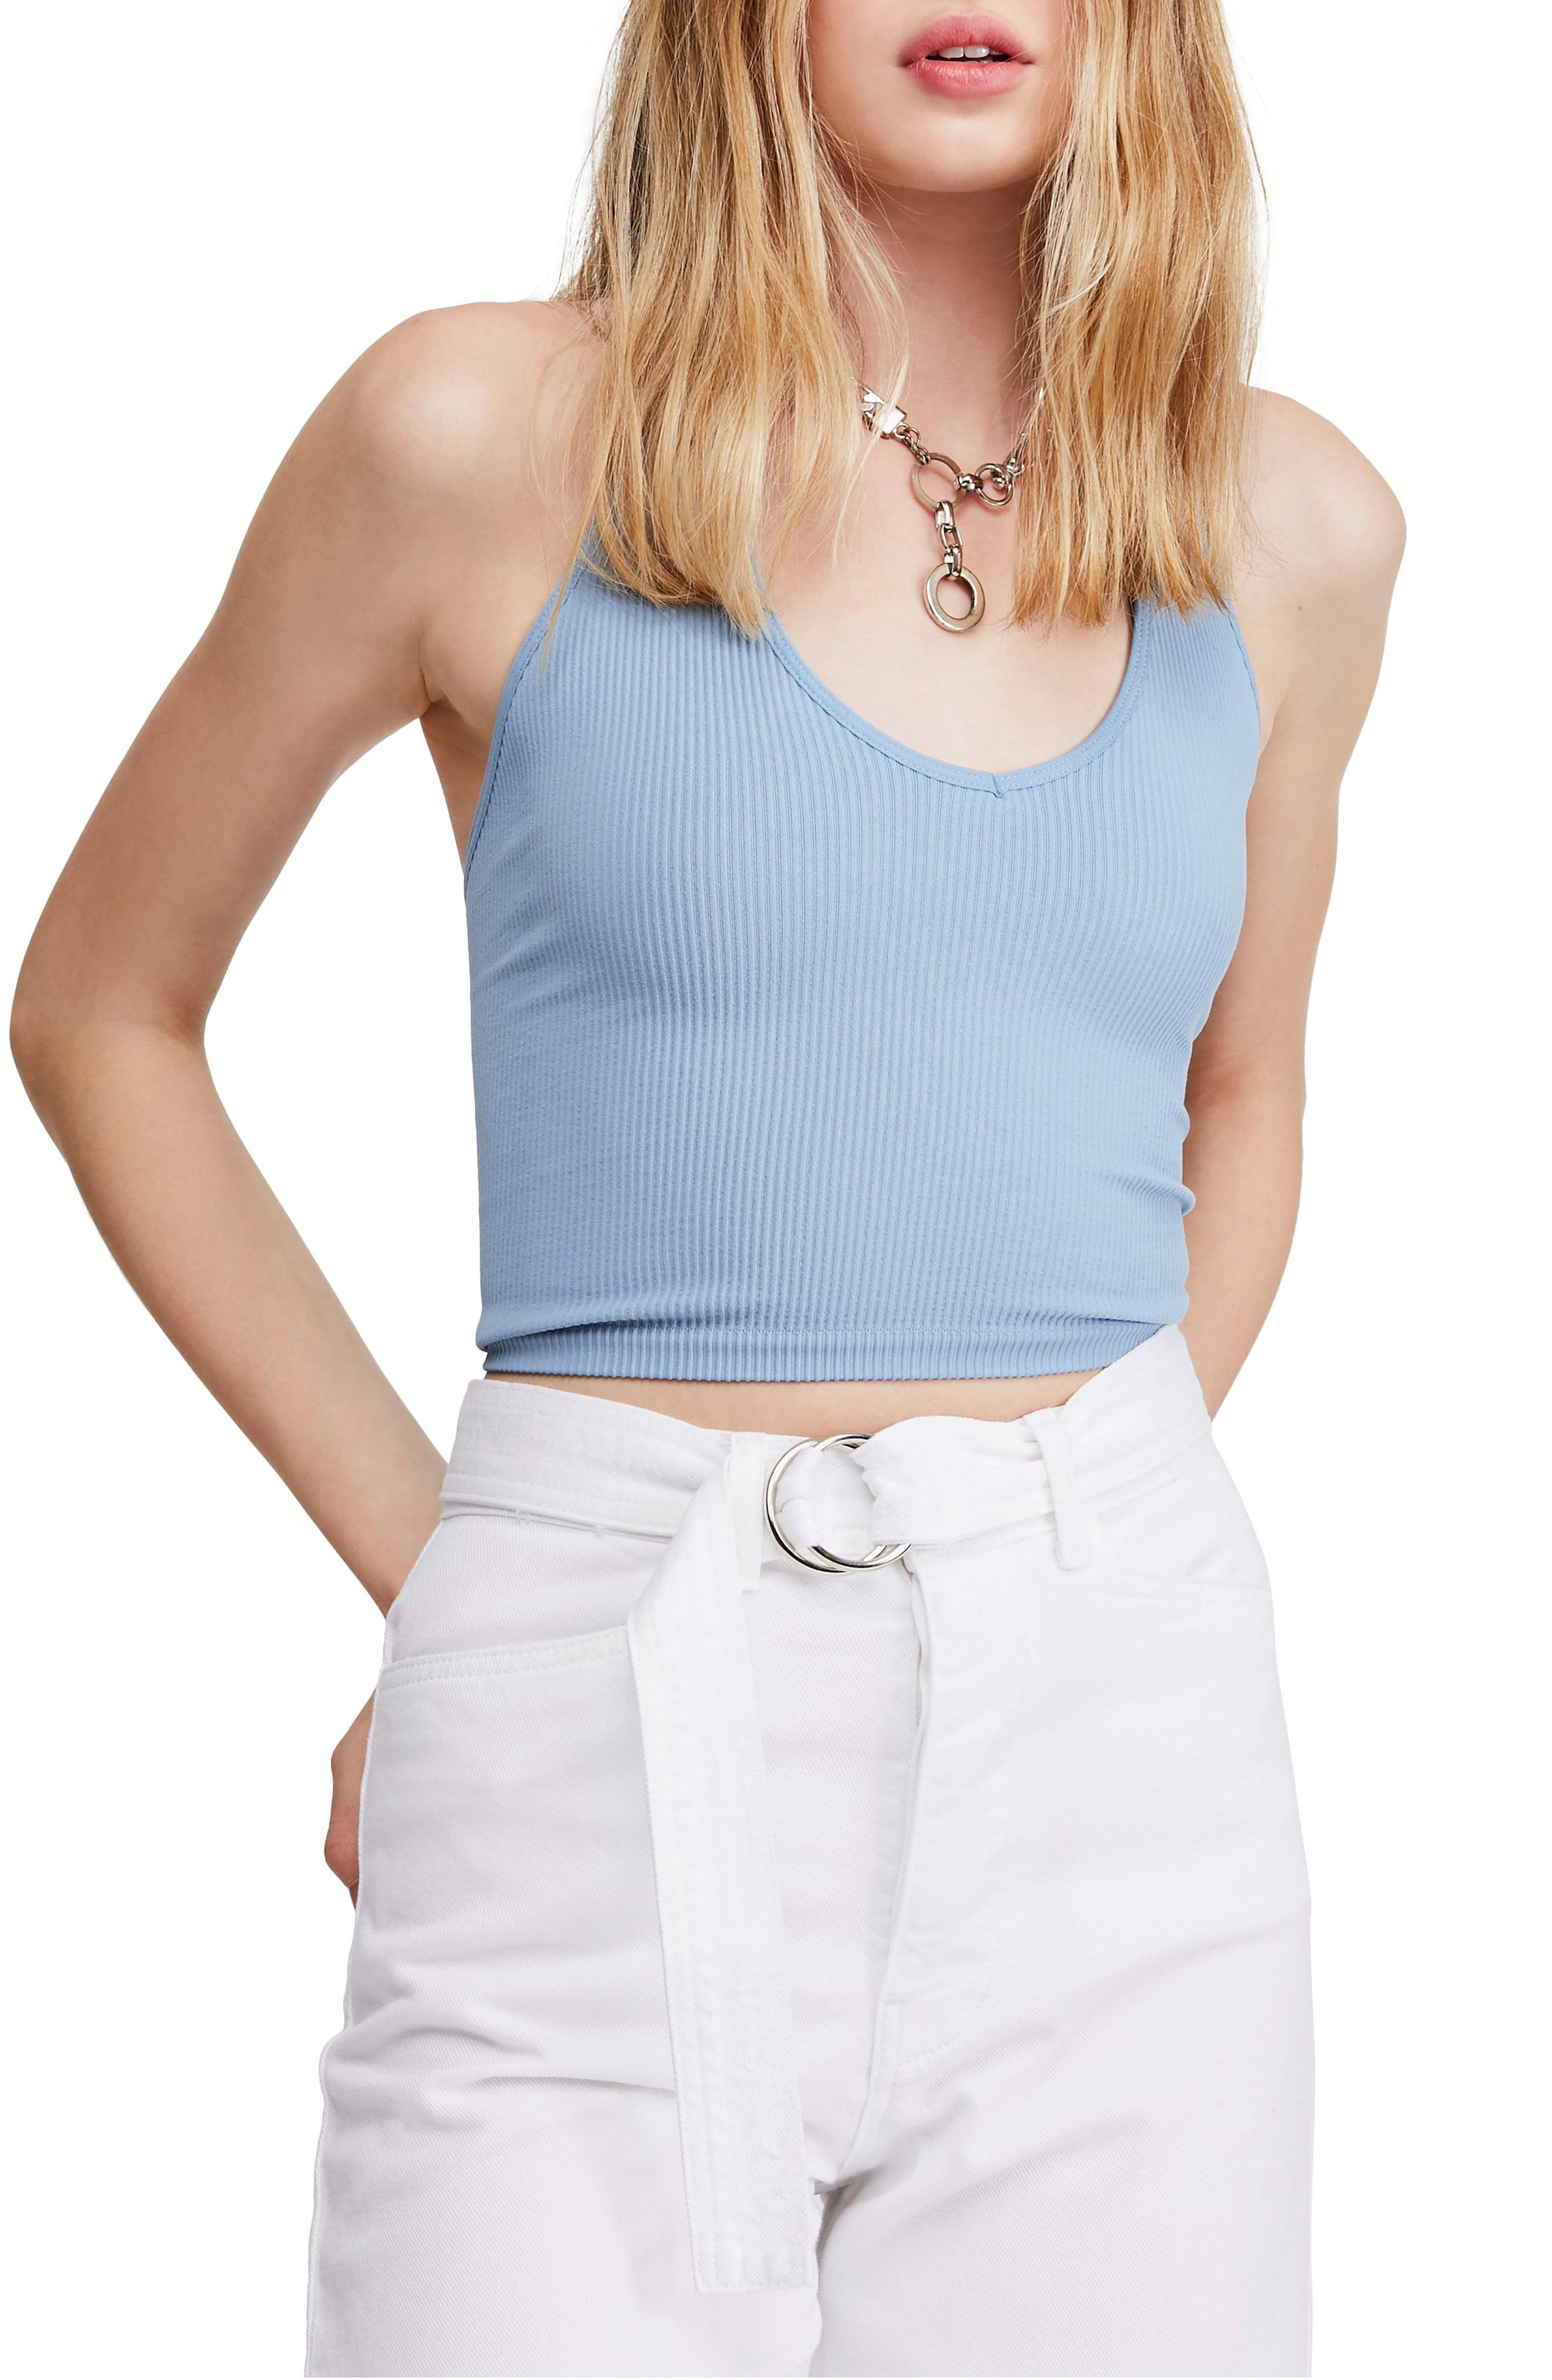 2b3d0f0643b72 Lyst - BDG Urban Outfitters Halter Crop Top in Blue